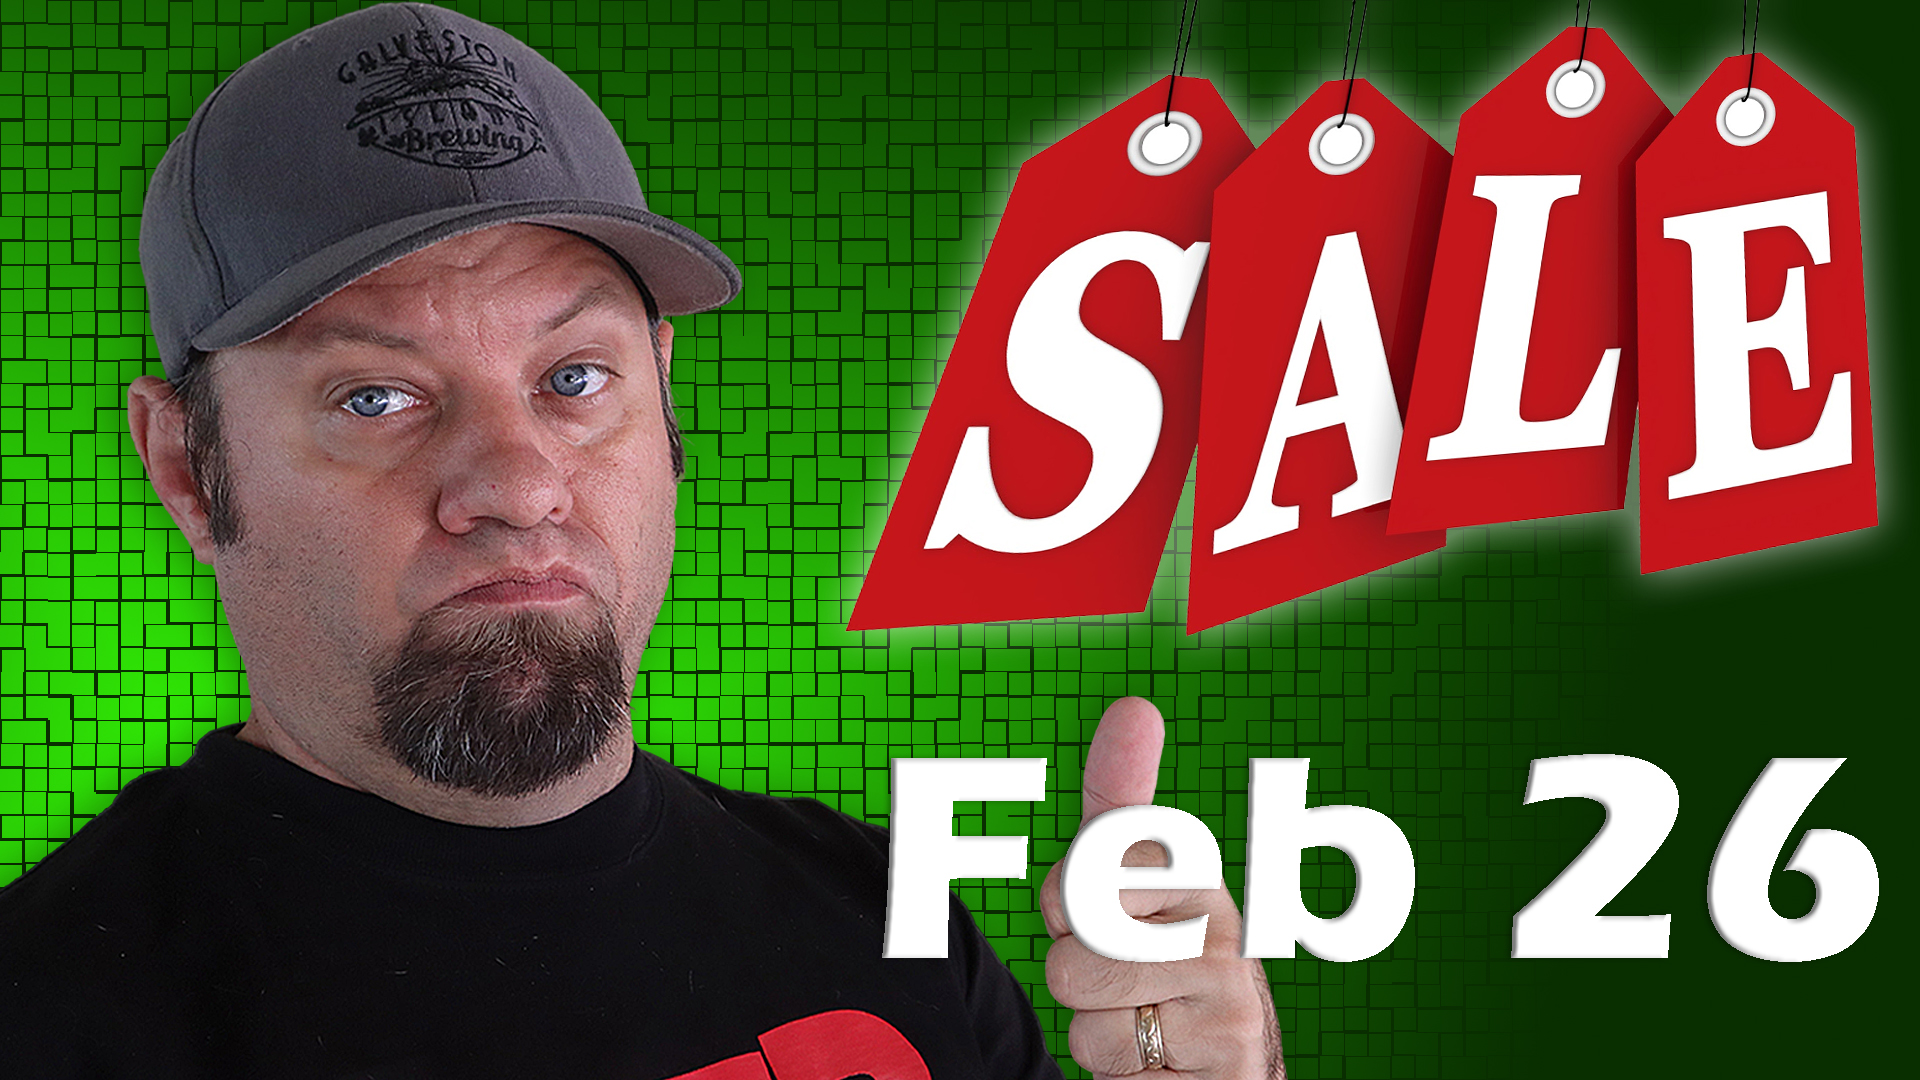 Episode 561: Ham Radio Shopping Deals for February 26th